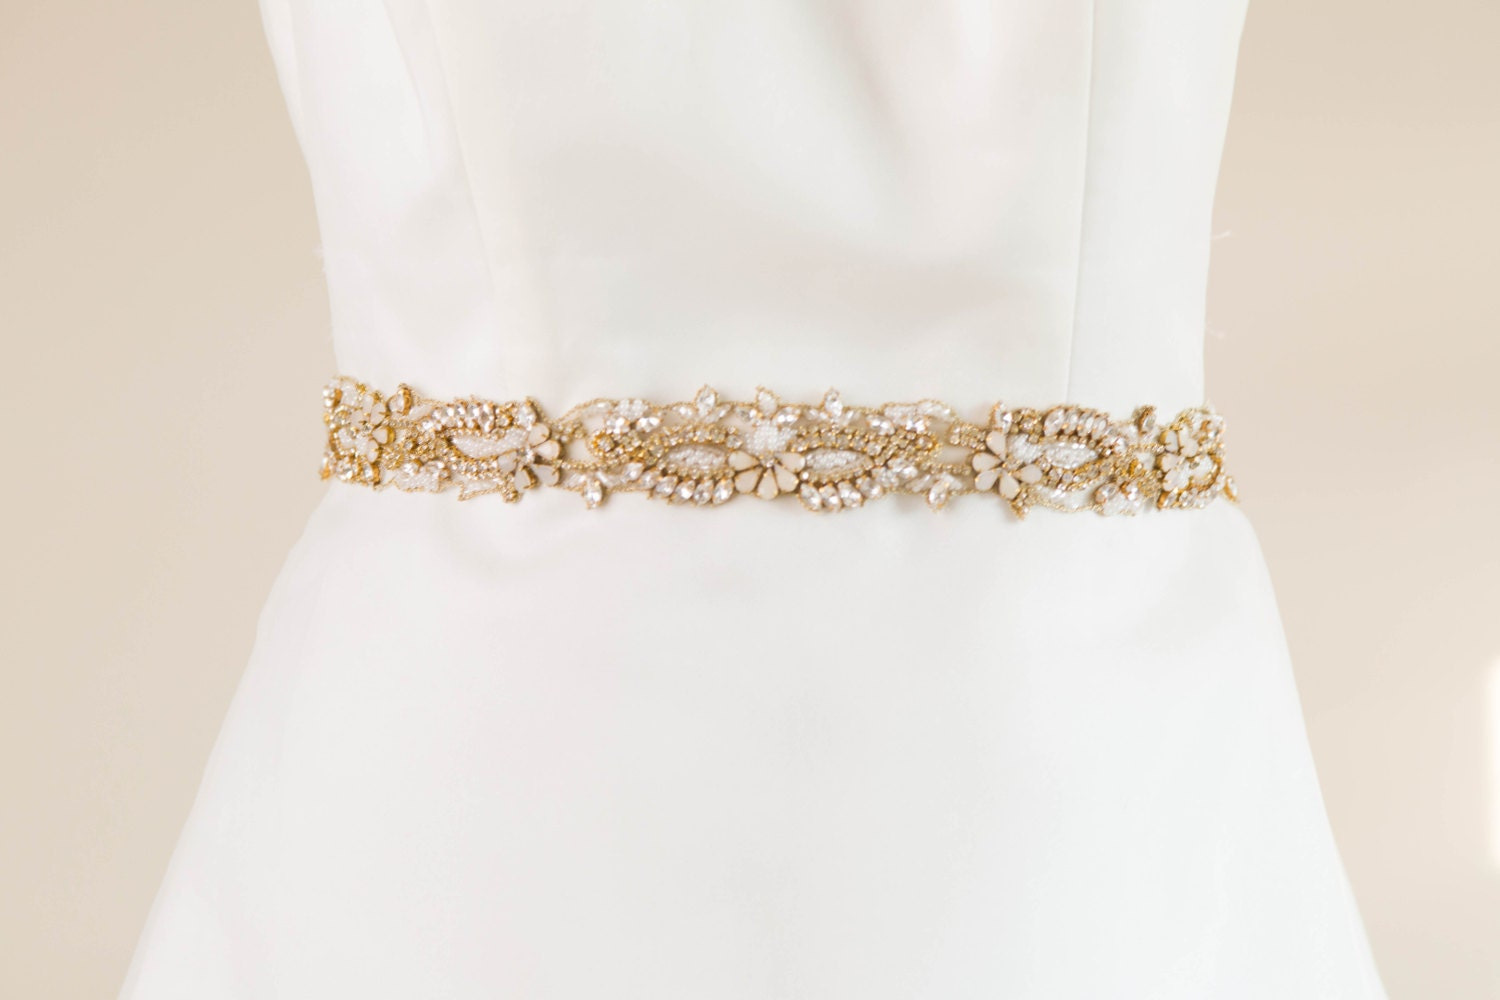 Wedding sash gold and opal bridal sash rhinestone encrusted for Rhinestone sash for wedding dress